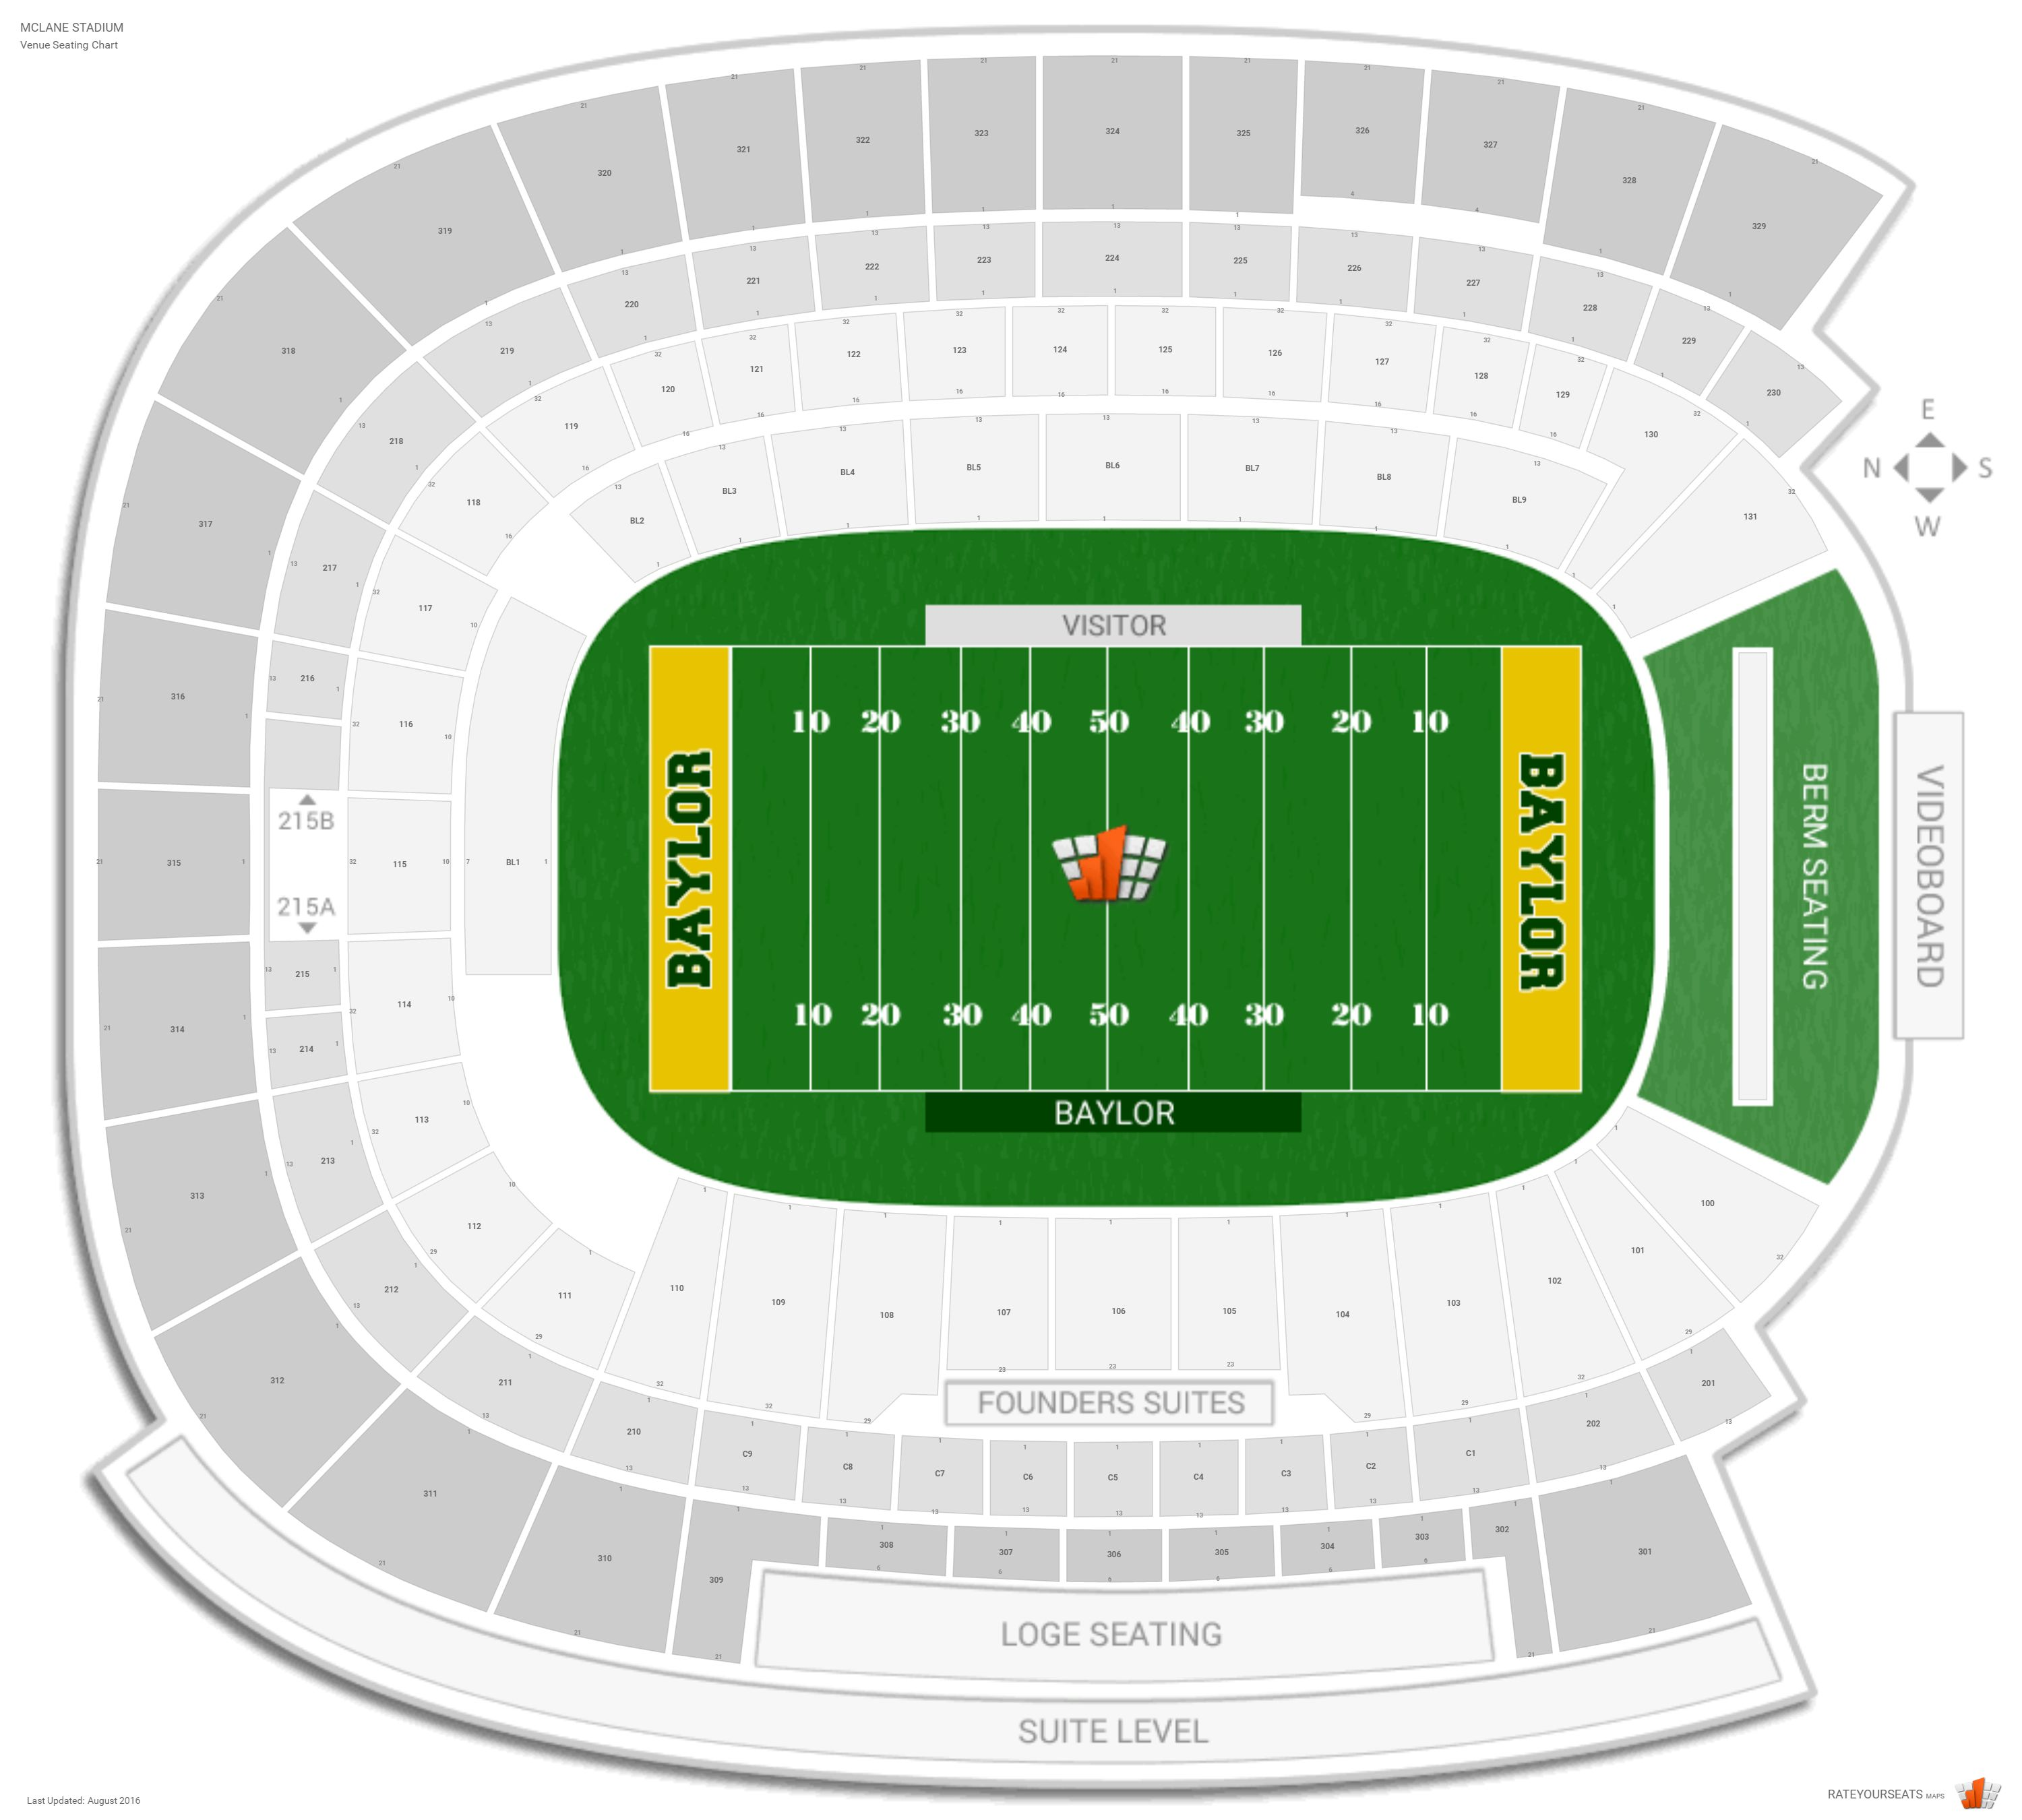 McLane Stadium Seating Chart with Row Numbers